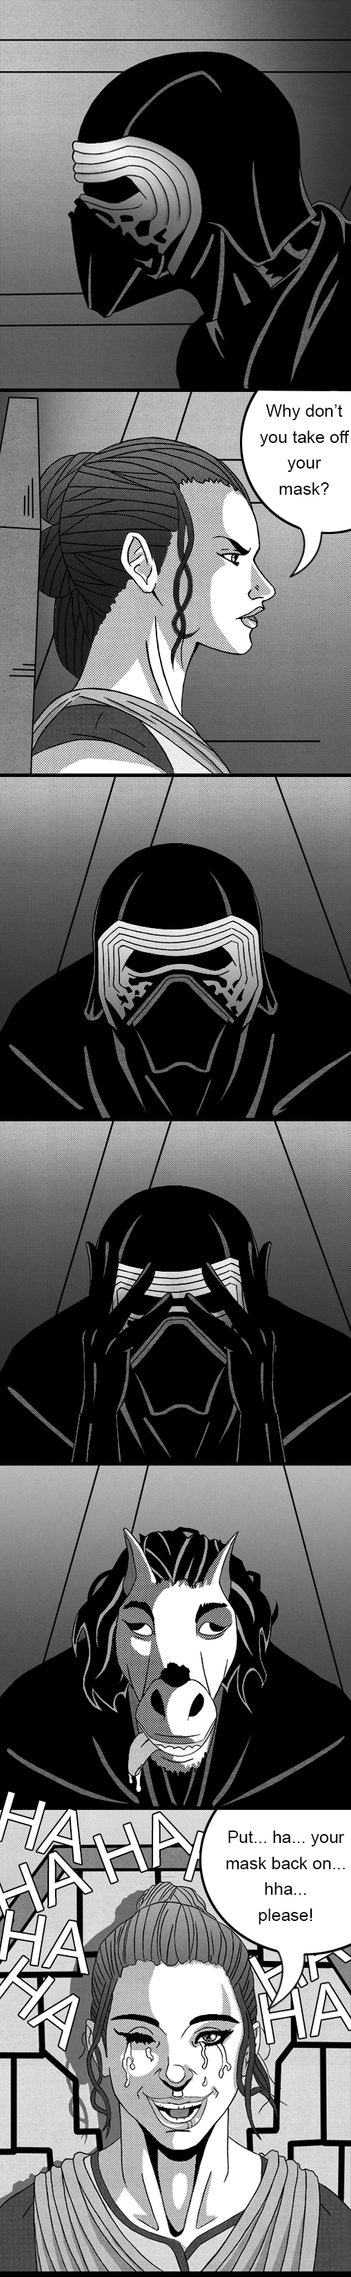 Star Wars - The Force Awakens Comic Strip by Th3DarkKn1ght